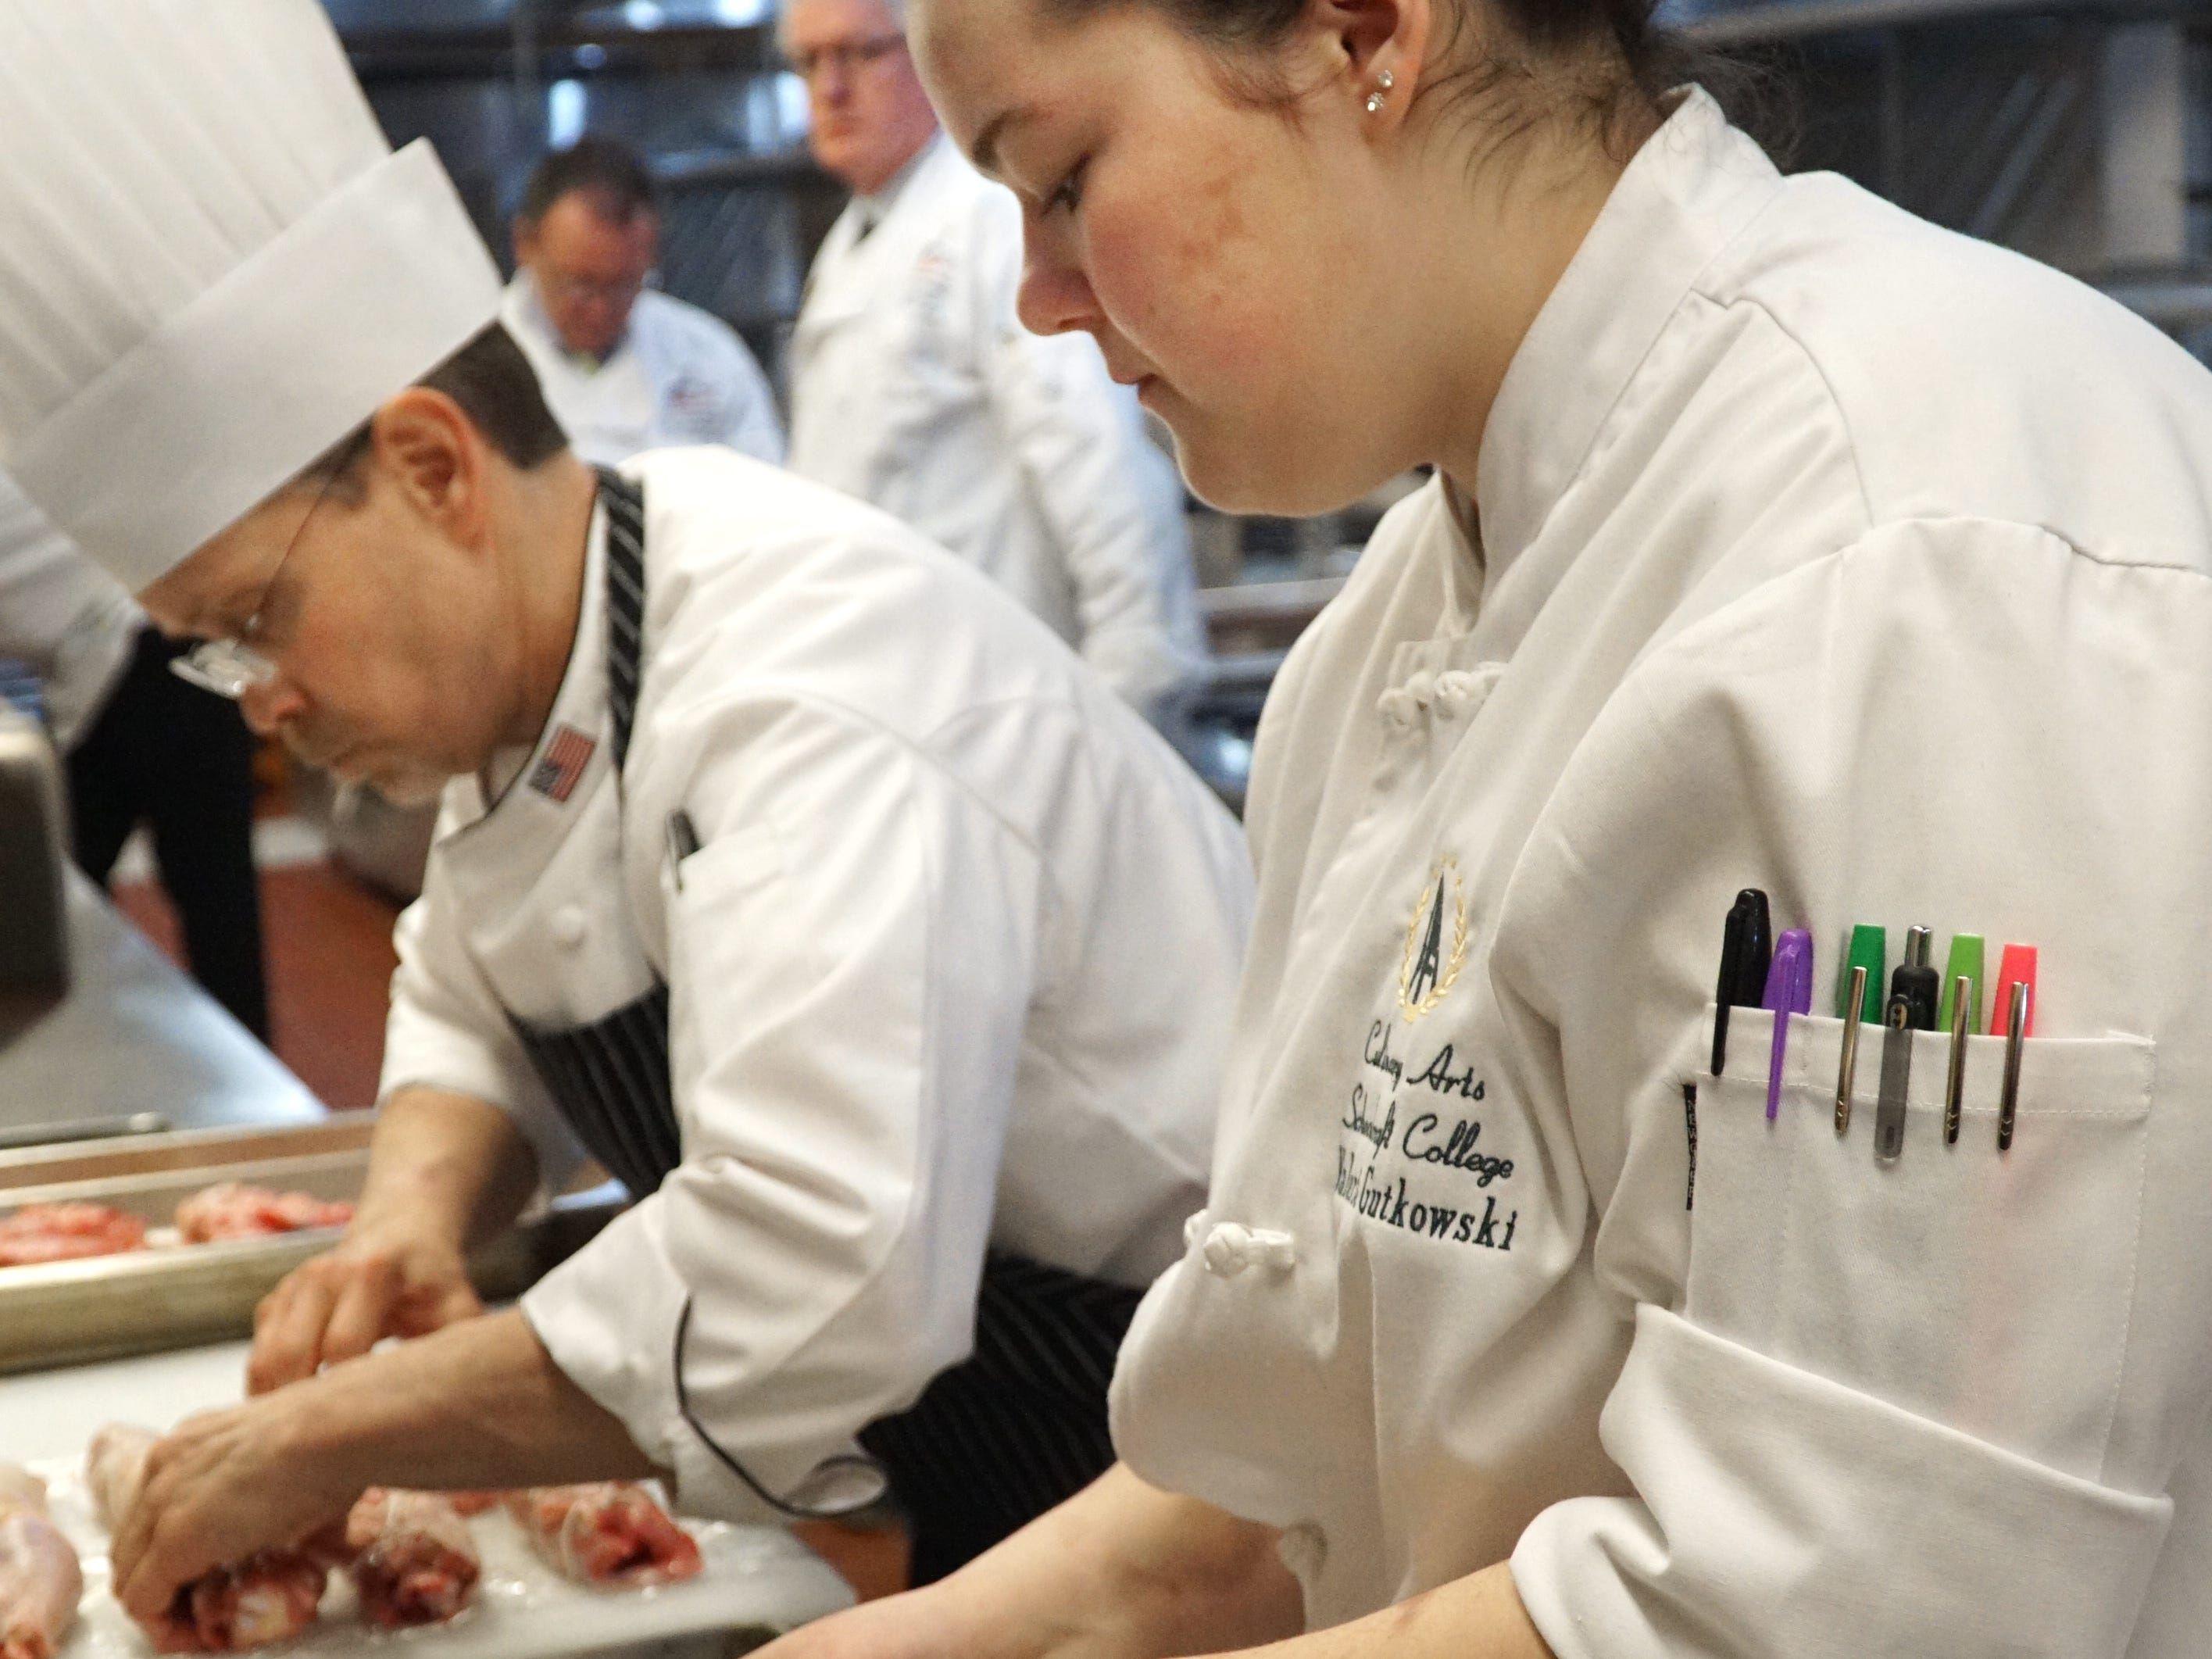 Bucci was assisted by Schoolcraft culinary student Valerie Gutowski during his exam.